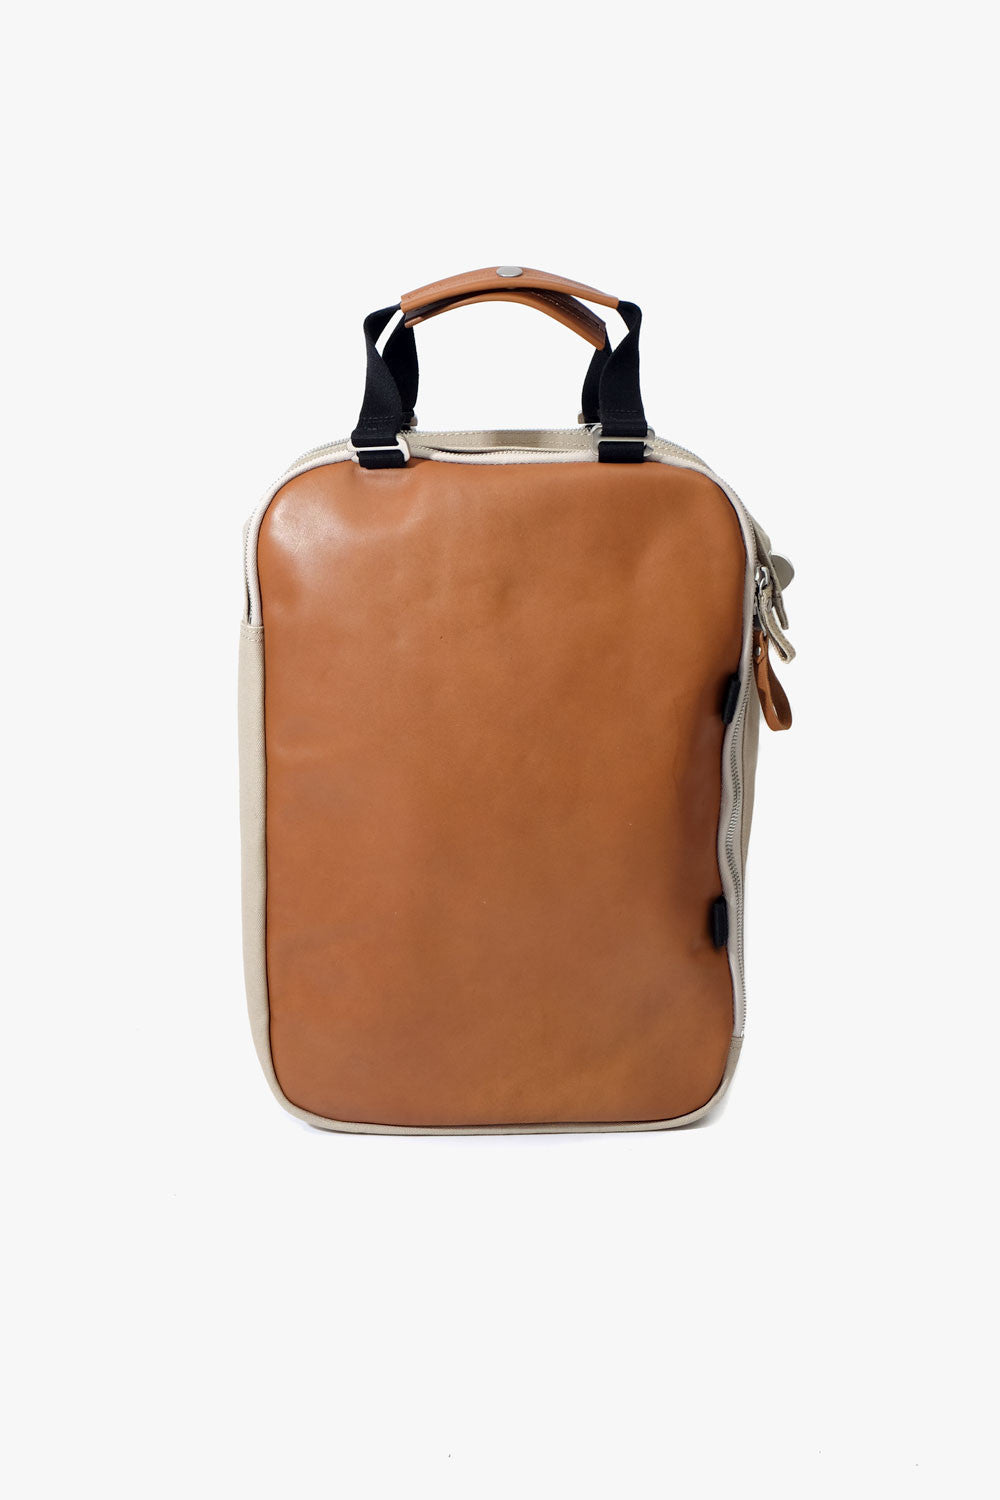 Daypack Brown Leather Canvas, Bags, QWSTION - Six and Sons